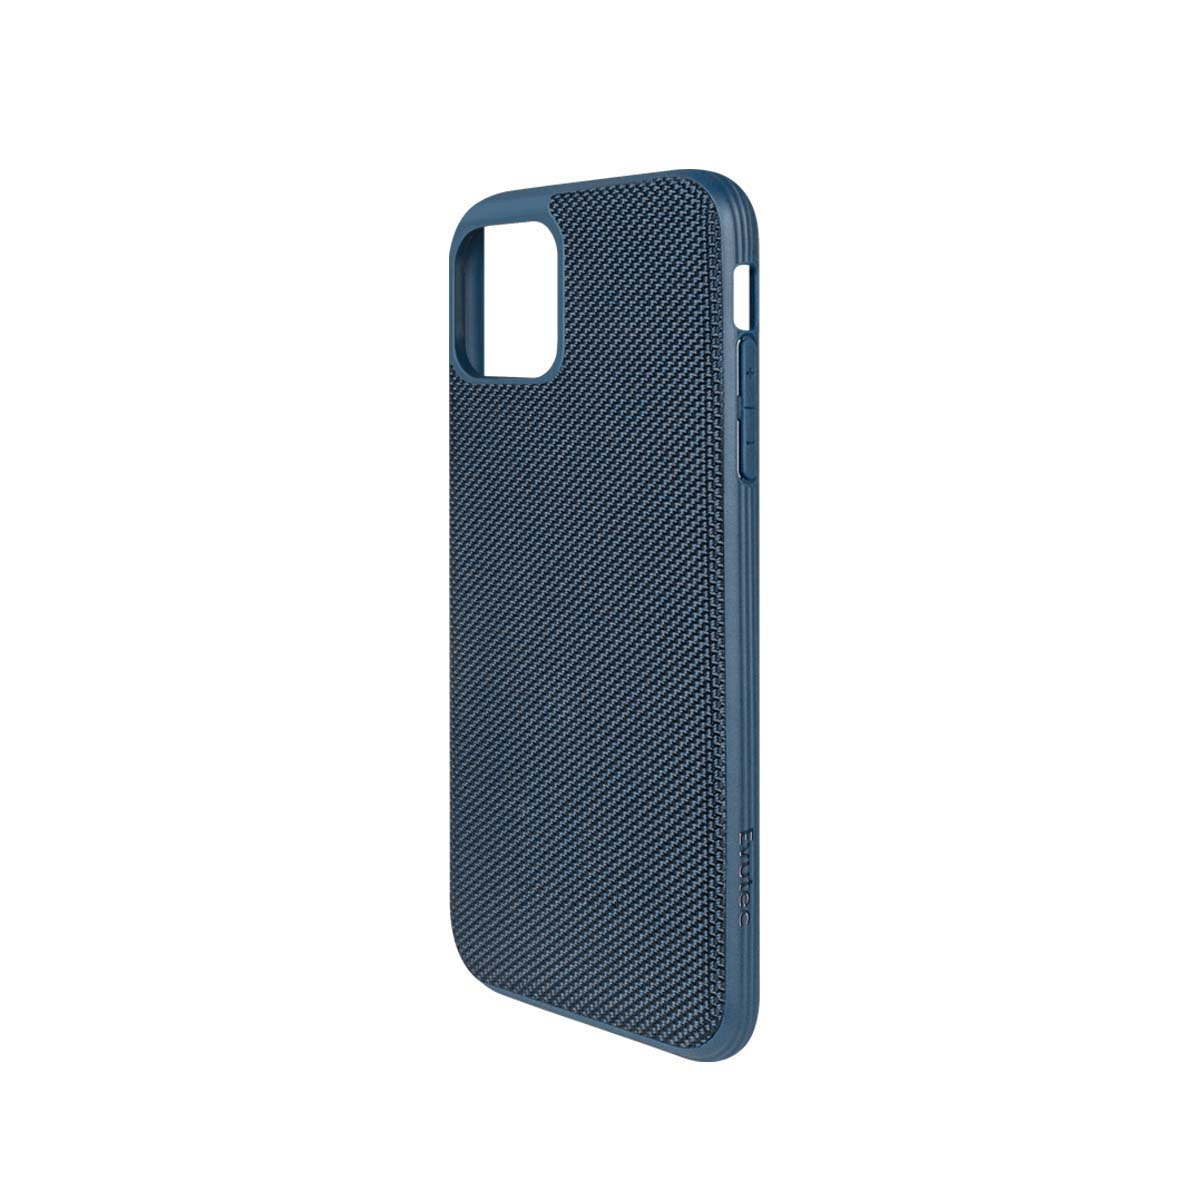 [US Direct] Evutec Case for iPhone 11 Pro Max Heavy Duty Case Ballistic Nylon Premium Protective Military Grade Drop Tested Shockproof (with car vent mount) Blue